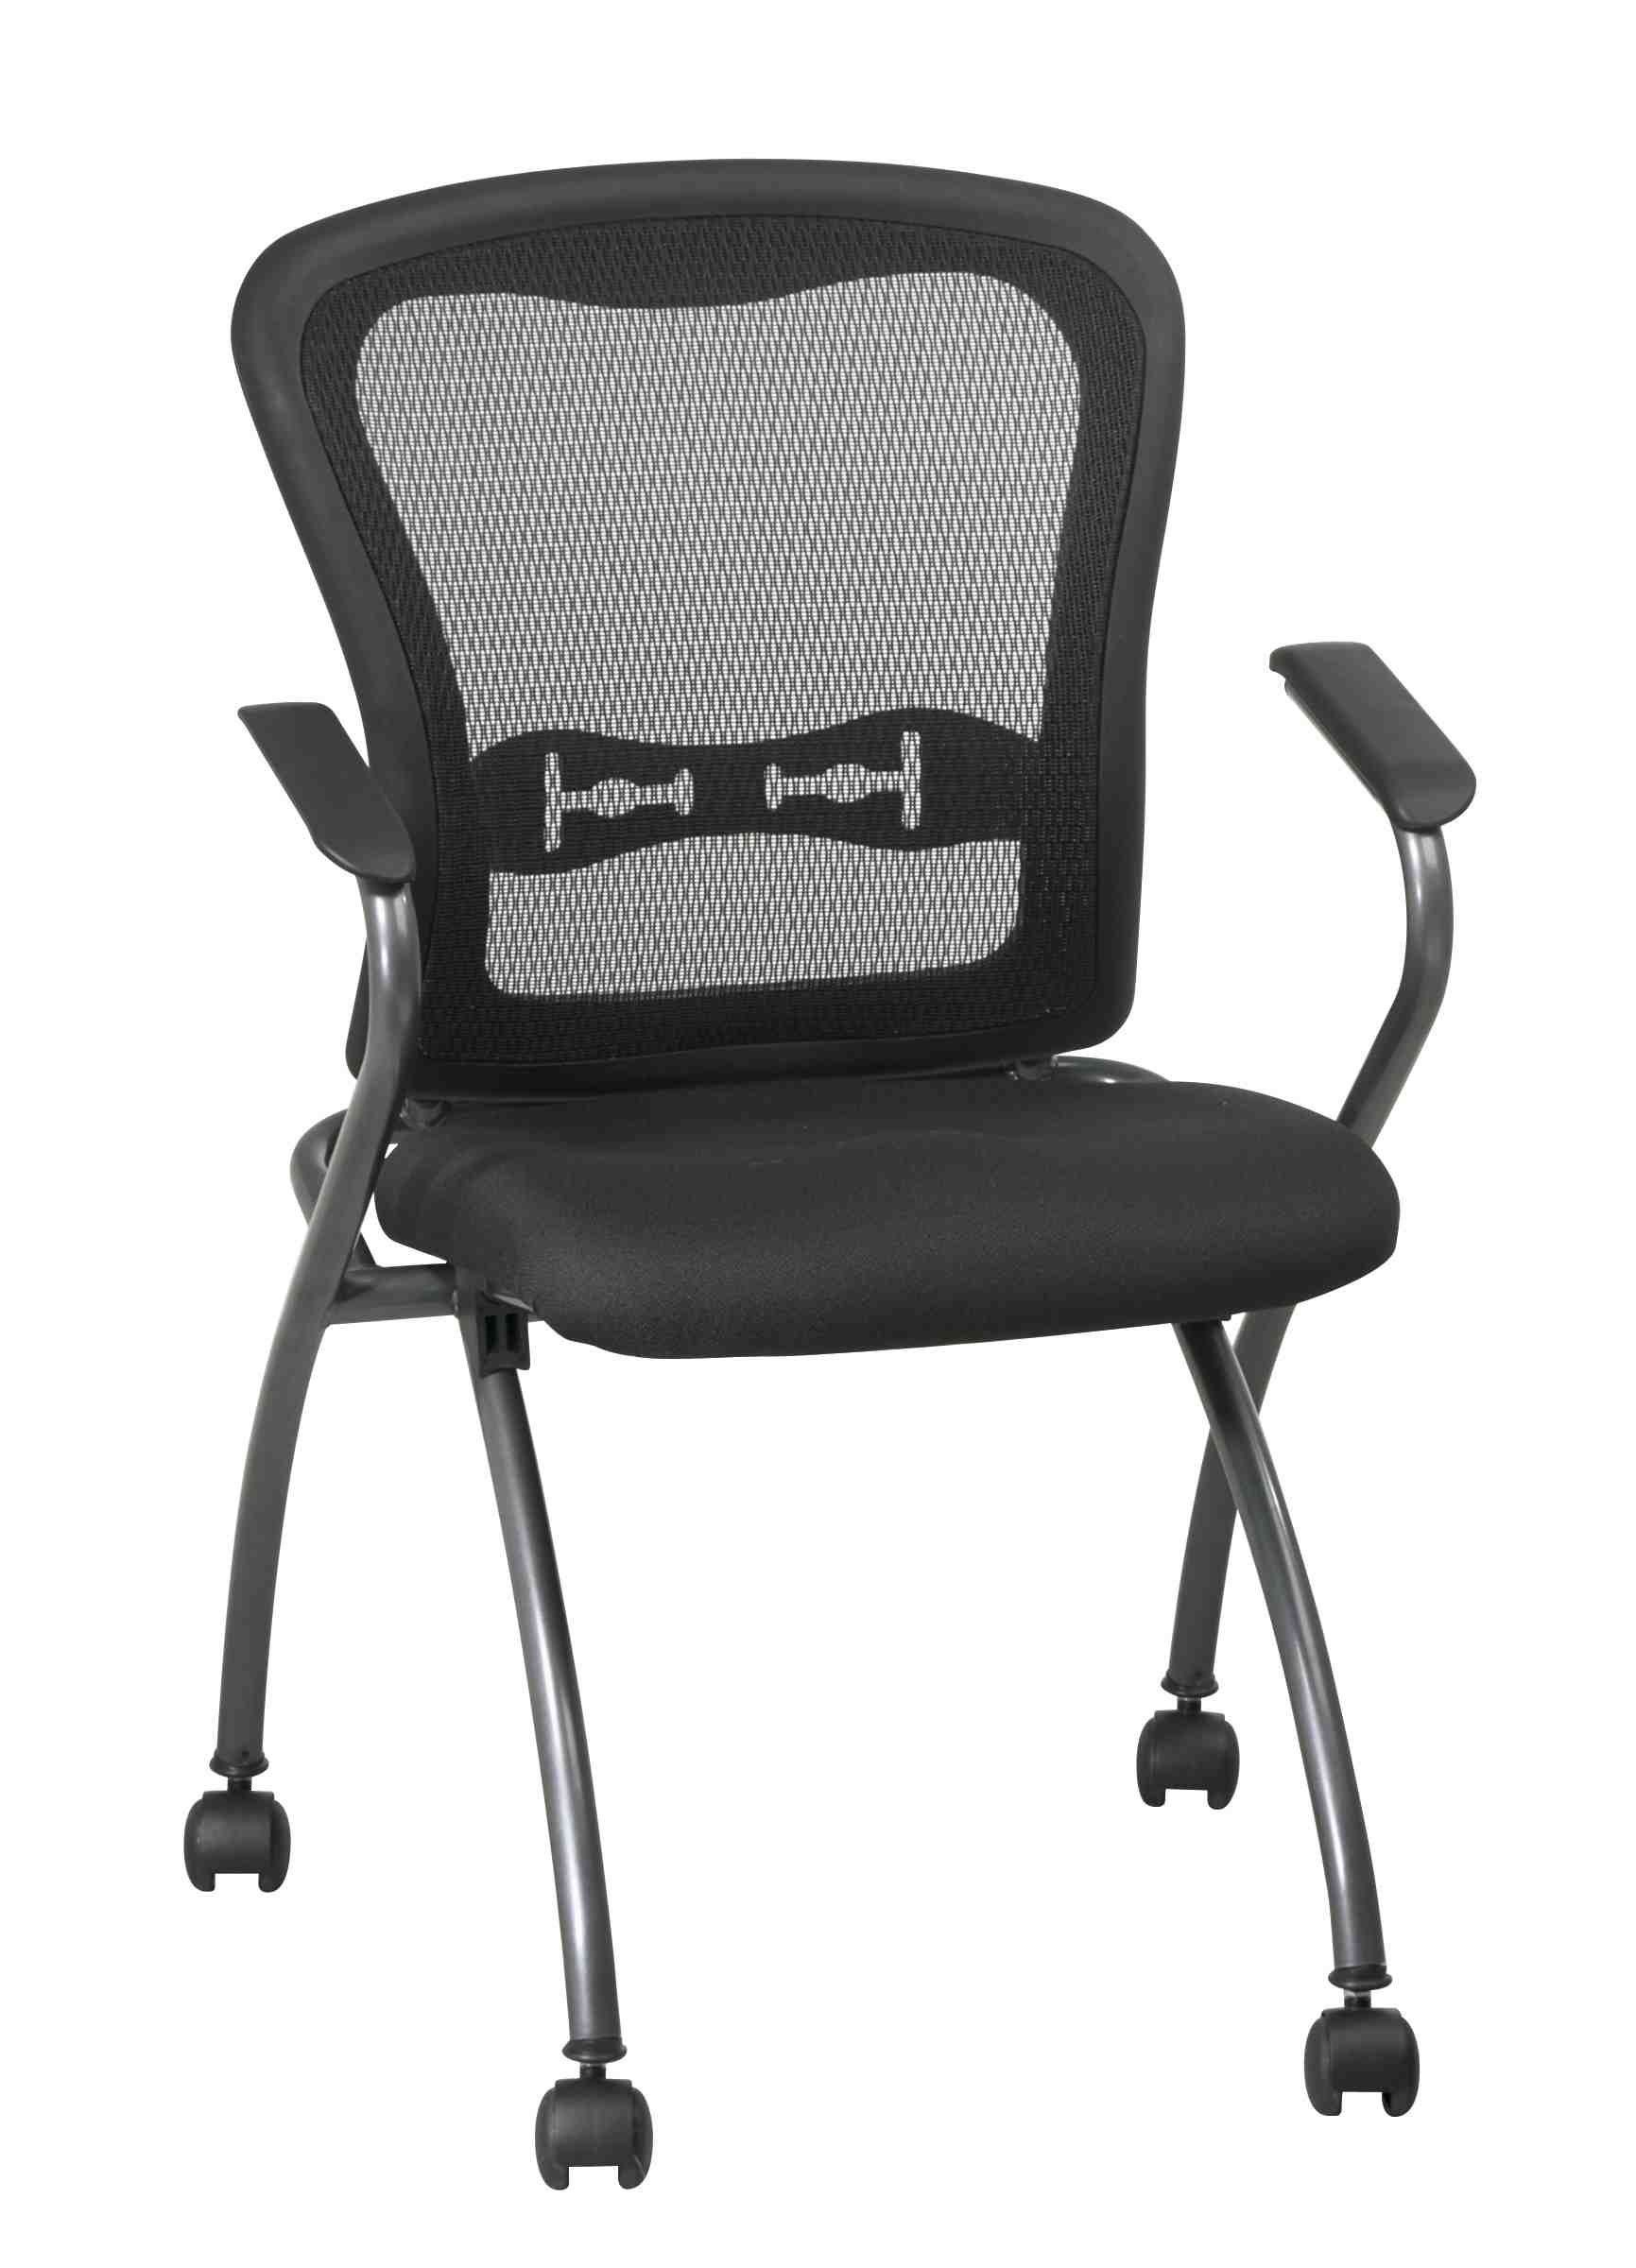 Robot Check Office Chair Folding Chair Padded Folding Chairs